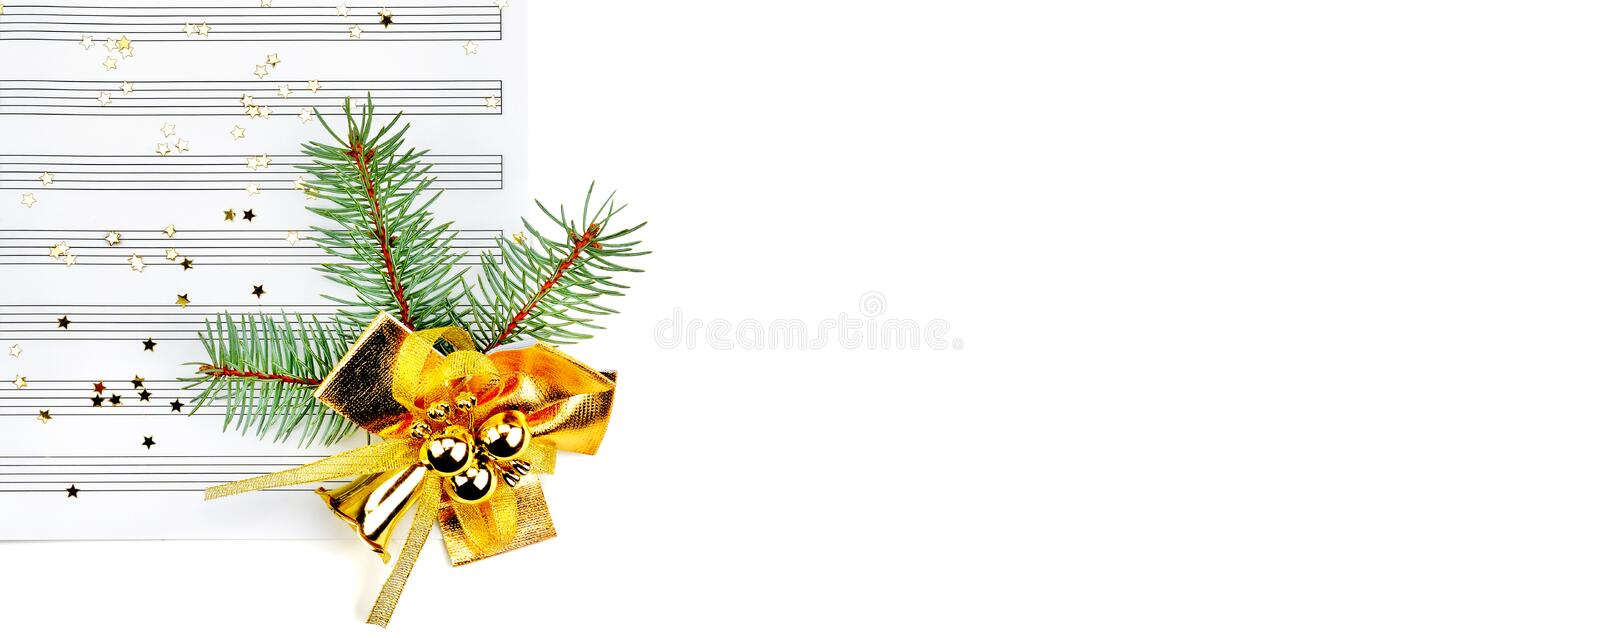 Christmas decorations isolated on white background. Free space for text. Wide photo. Christmas decorations and music sheet isolated on white background. Free royalty free stock image